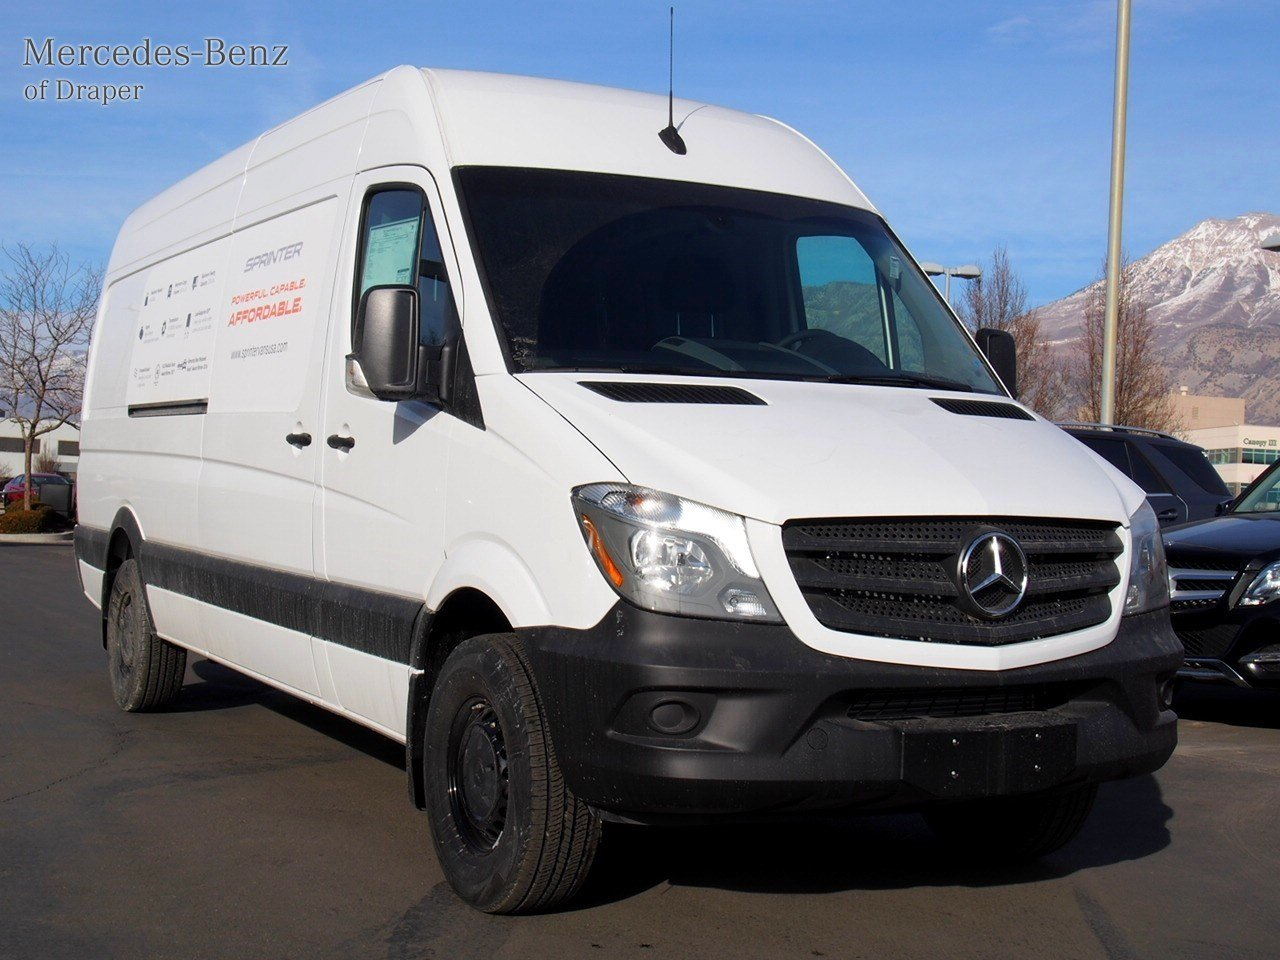 New 2017 mercedes benz sprinter cargo vans worker cargo for 2017 mercedes benz sprinter cargo van